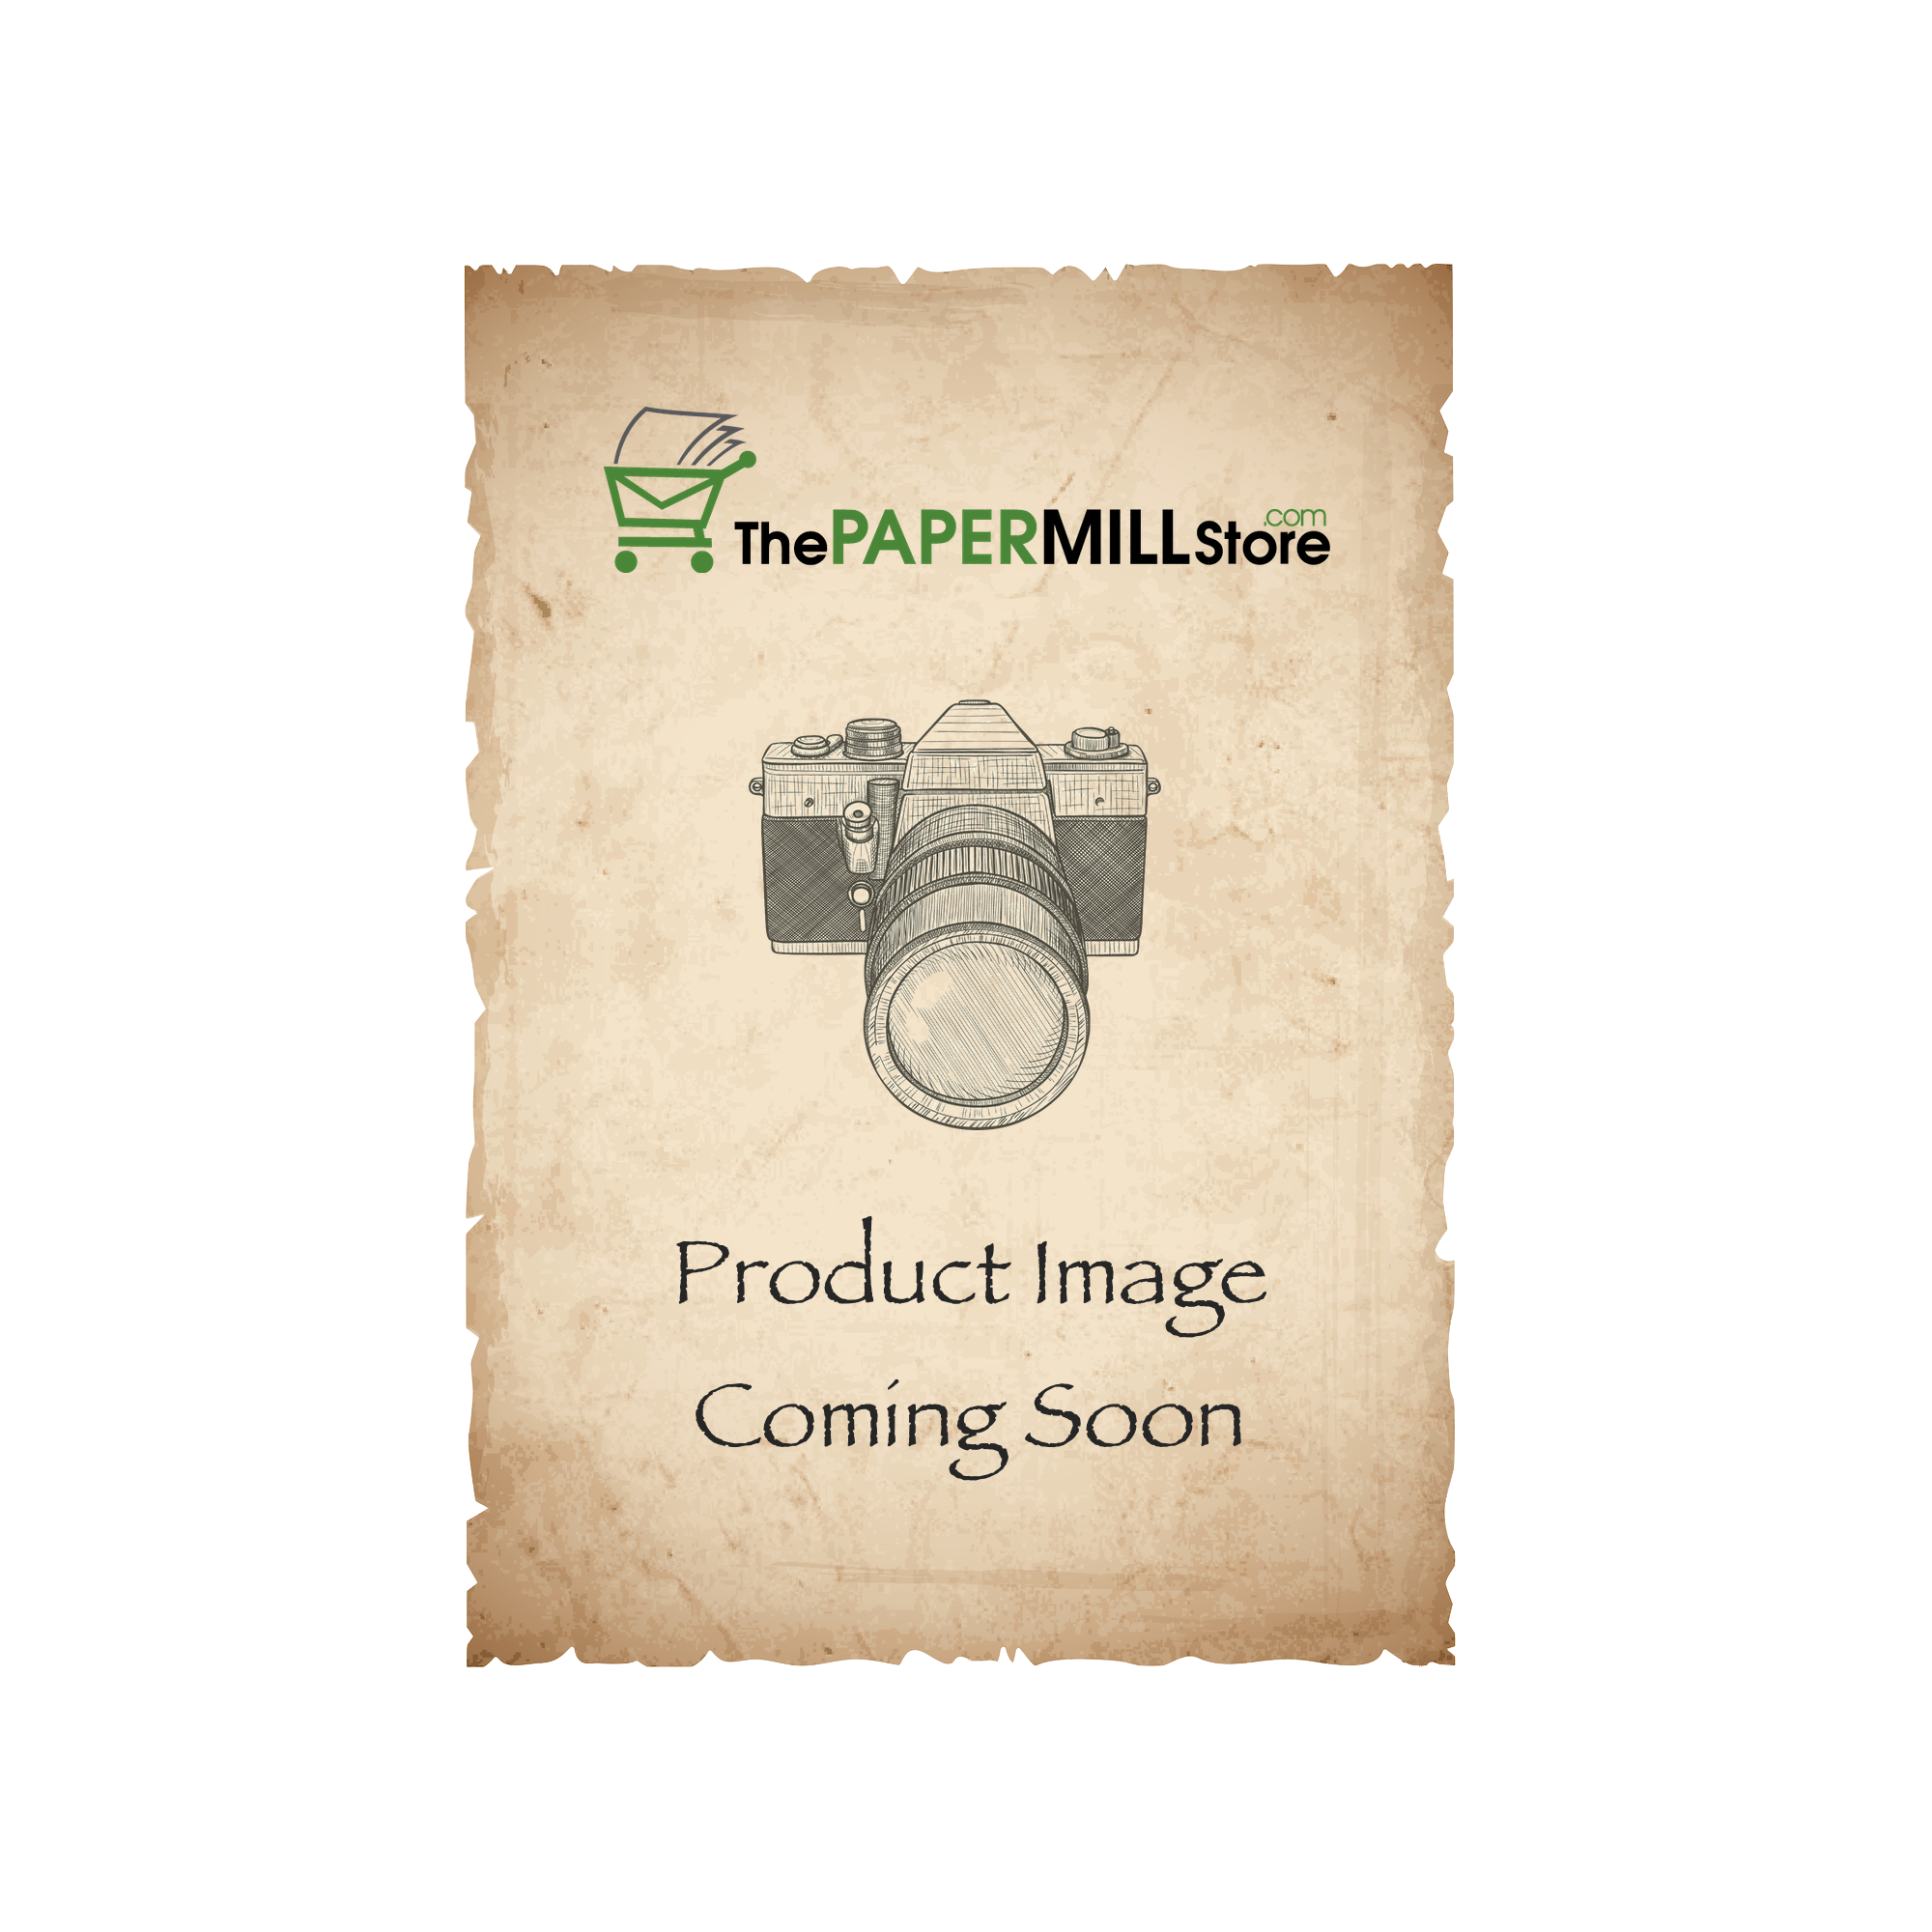 Loop Inxwell i-Tone Eco Cream Paper - 13 x 19 in 80 lb Text Vellum  100% Recycled 500 per Ream